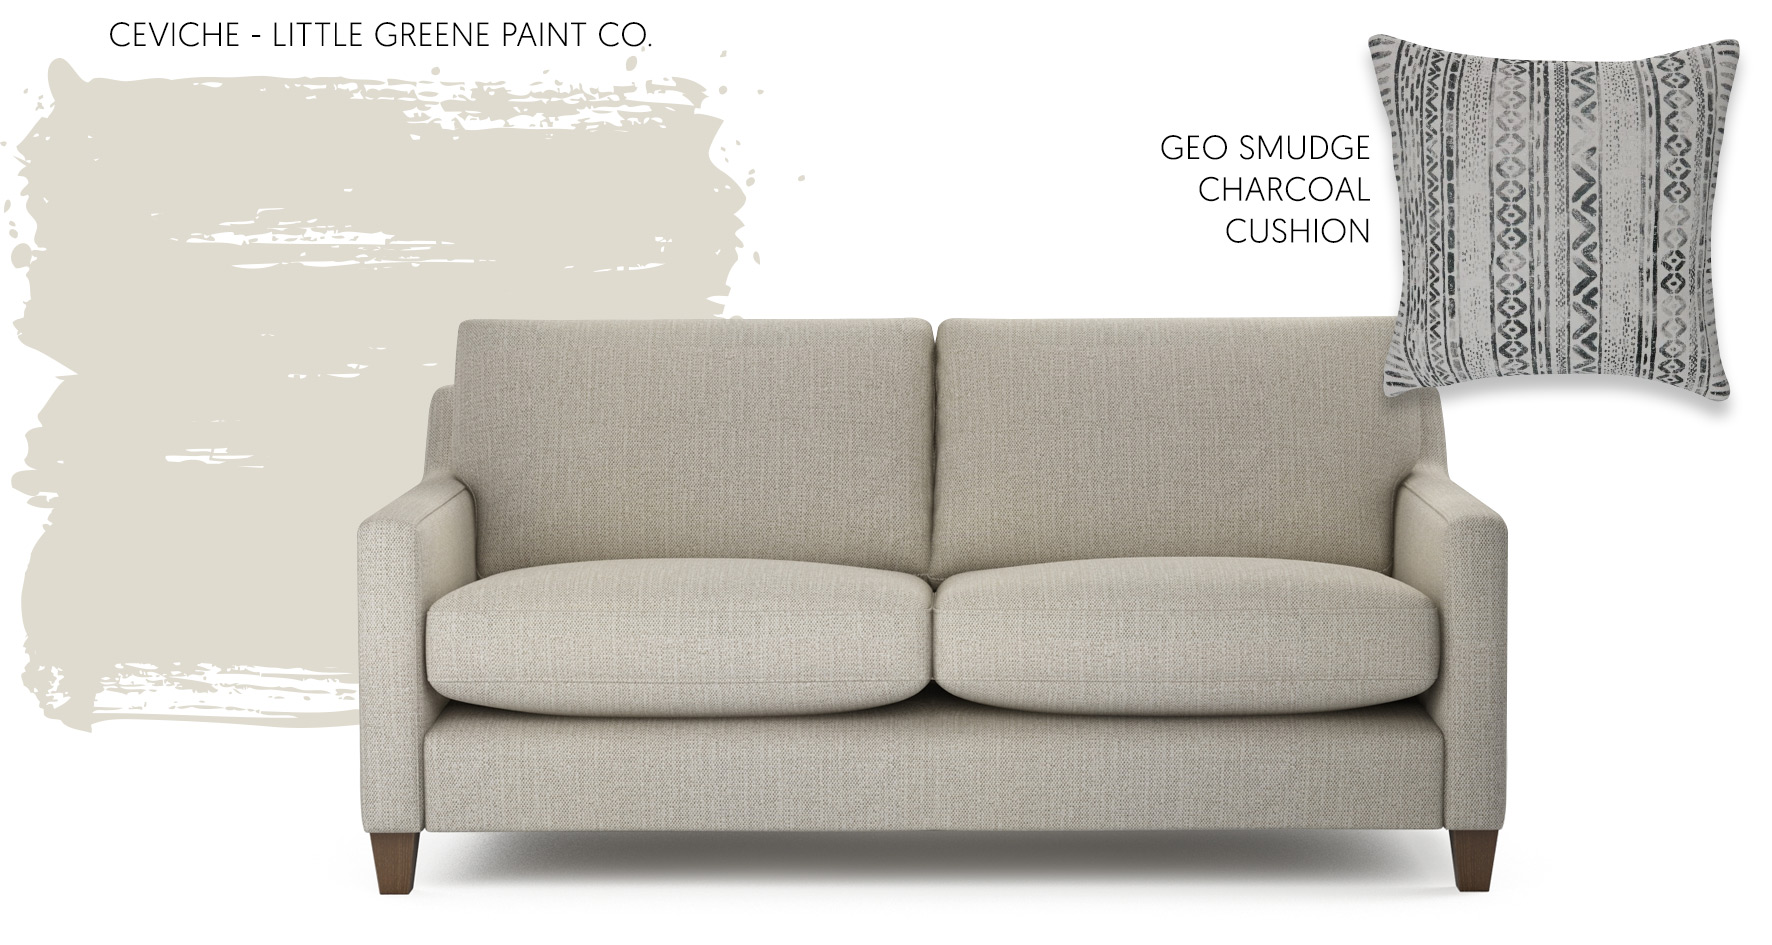 Accessorising a neutral sofa with paint from Little Greene Paint Co.